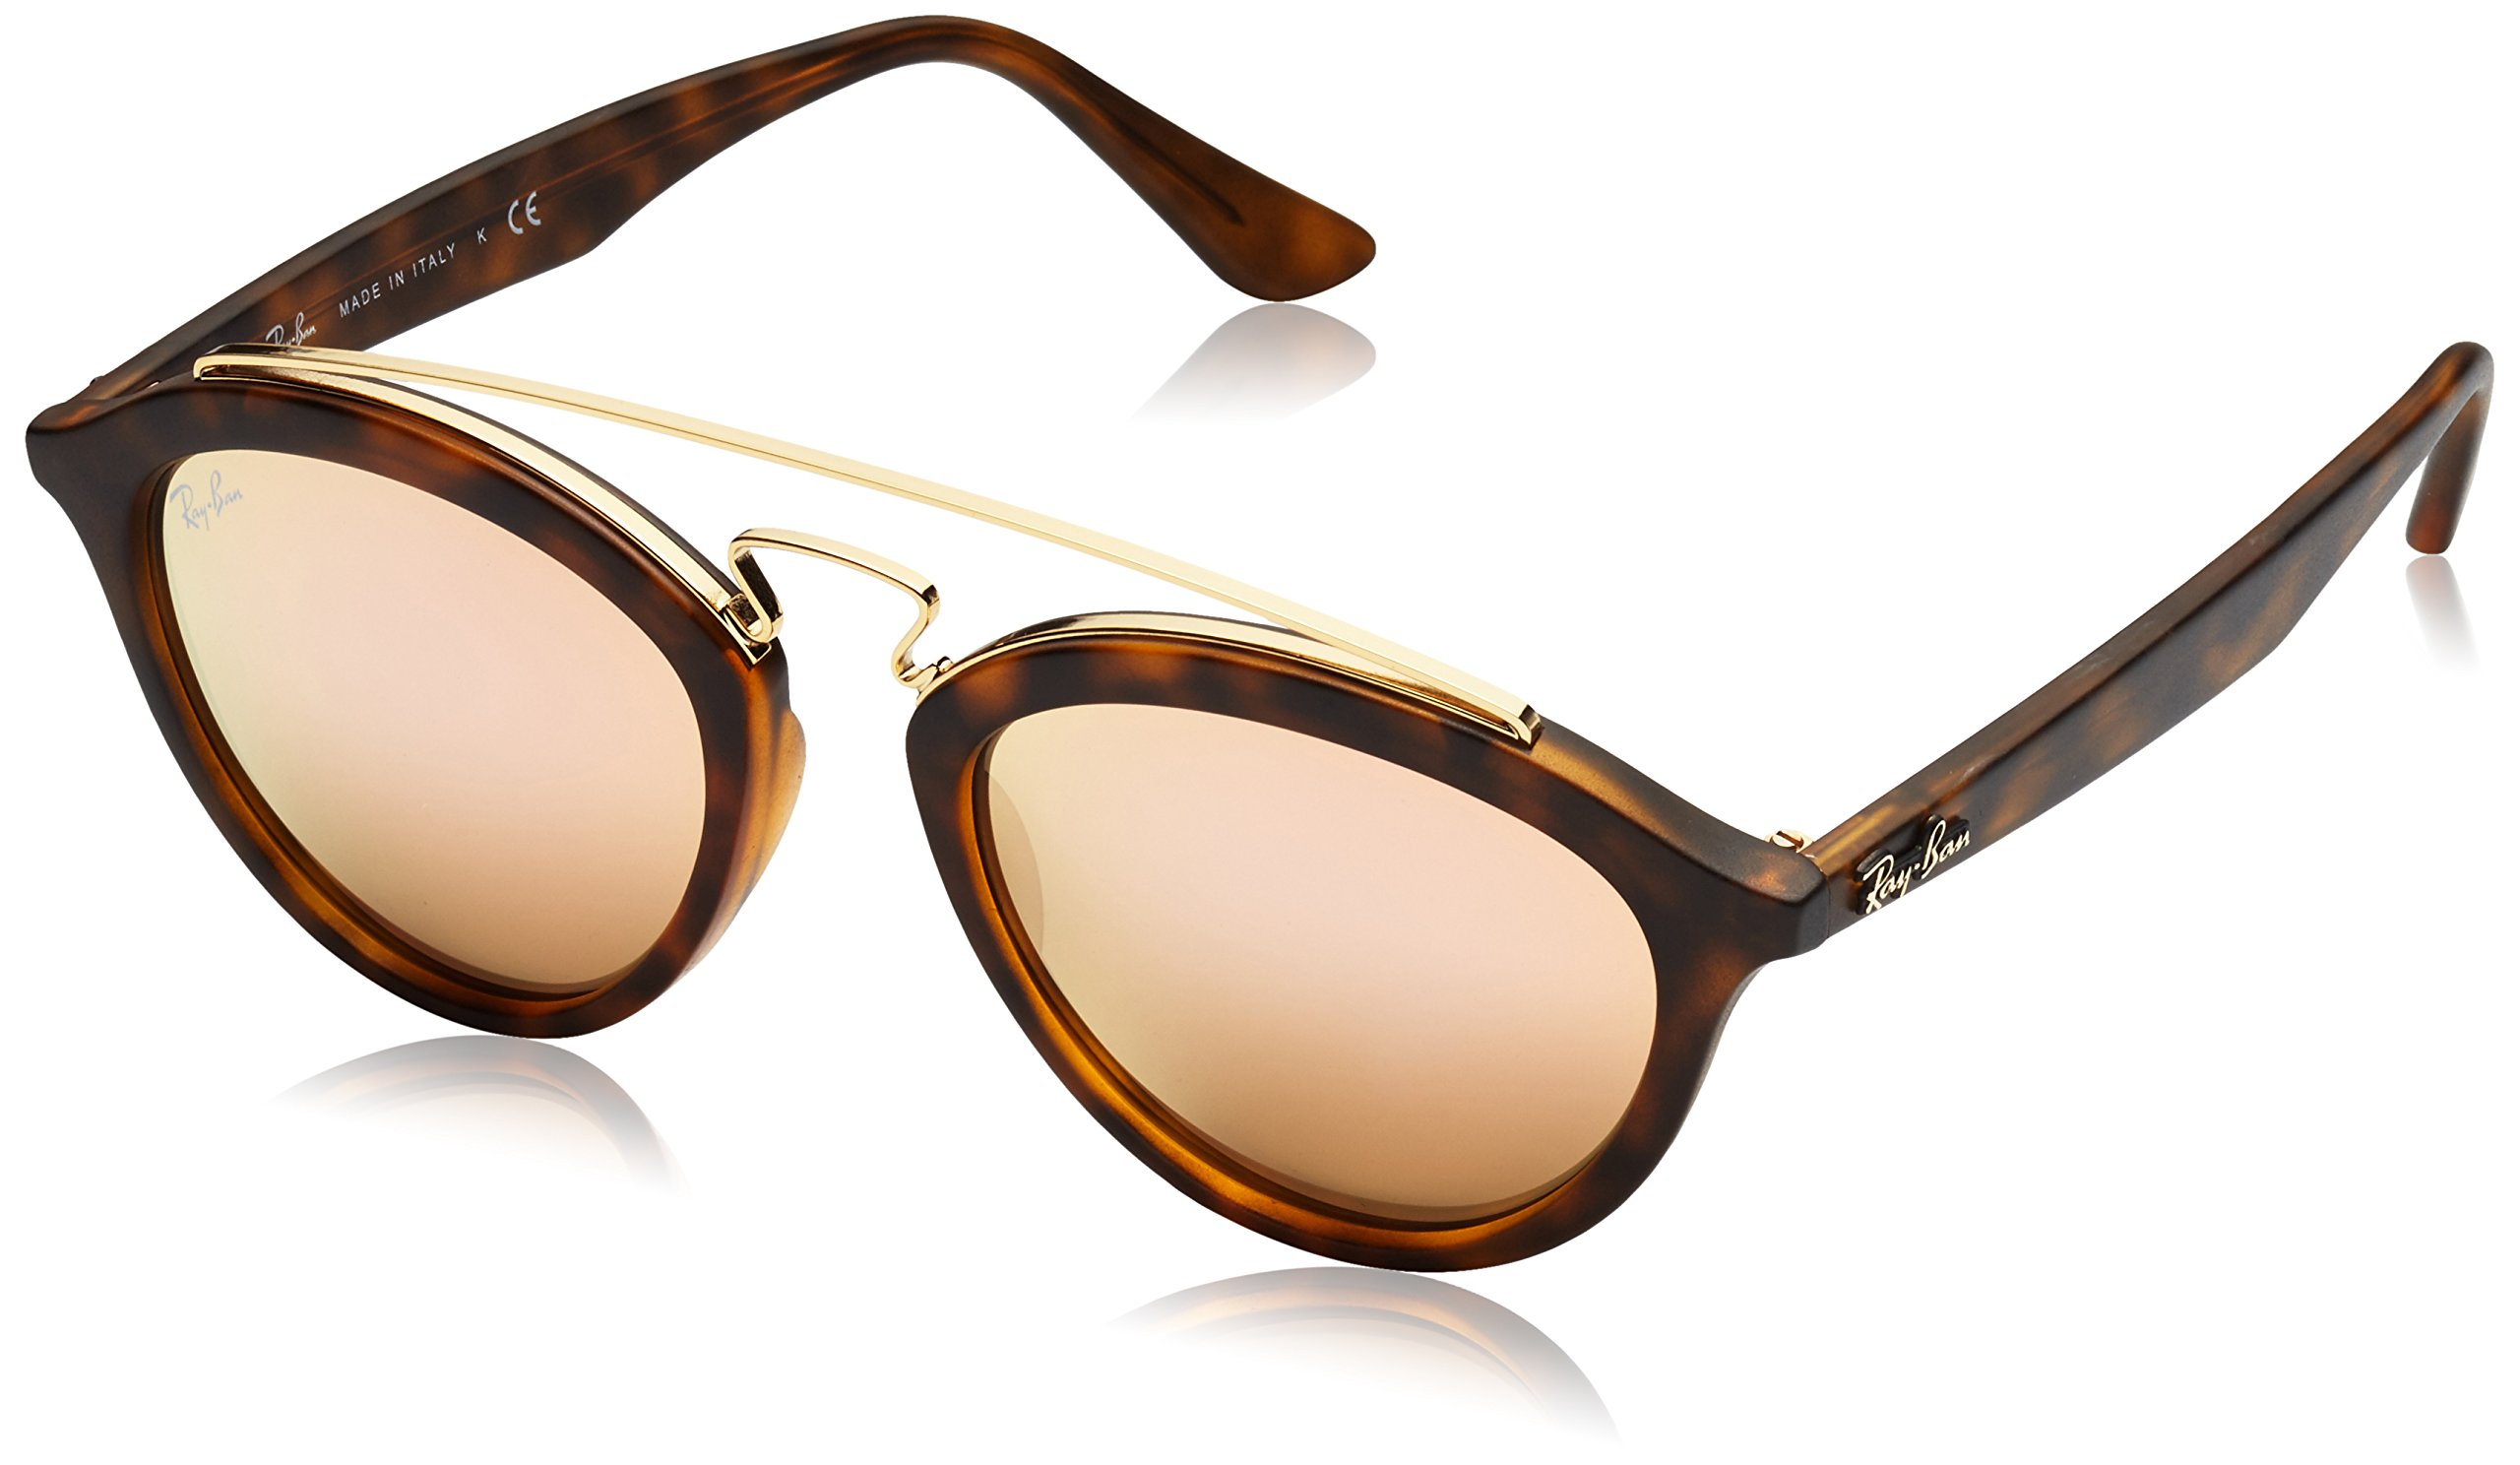 Ray-Ban INJECTED WOMAN SUNGLASS - MATTE HAVANA Frame LIGHT BROWN MIRROR PINK Lenses 50mm Non-Polarized